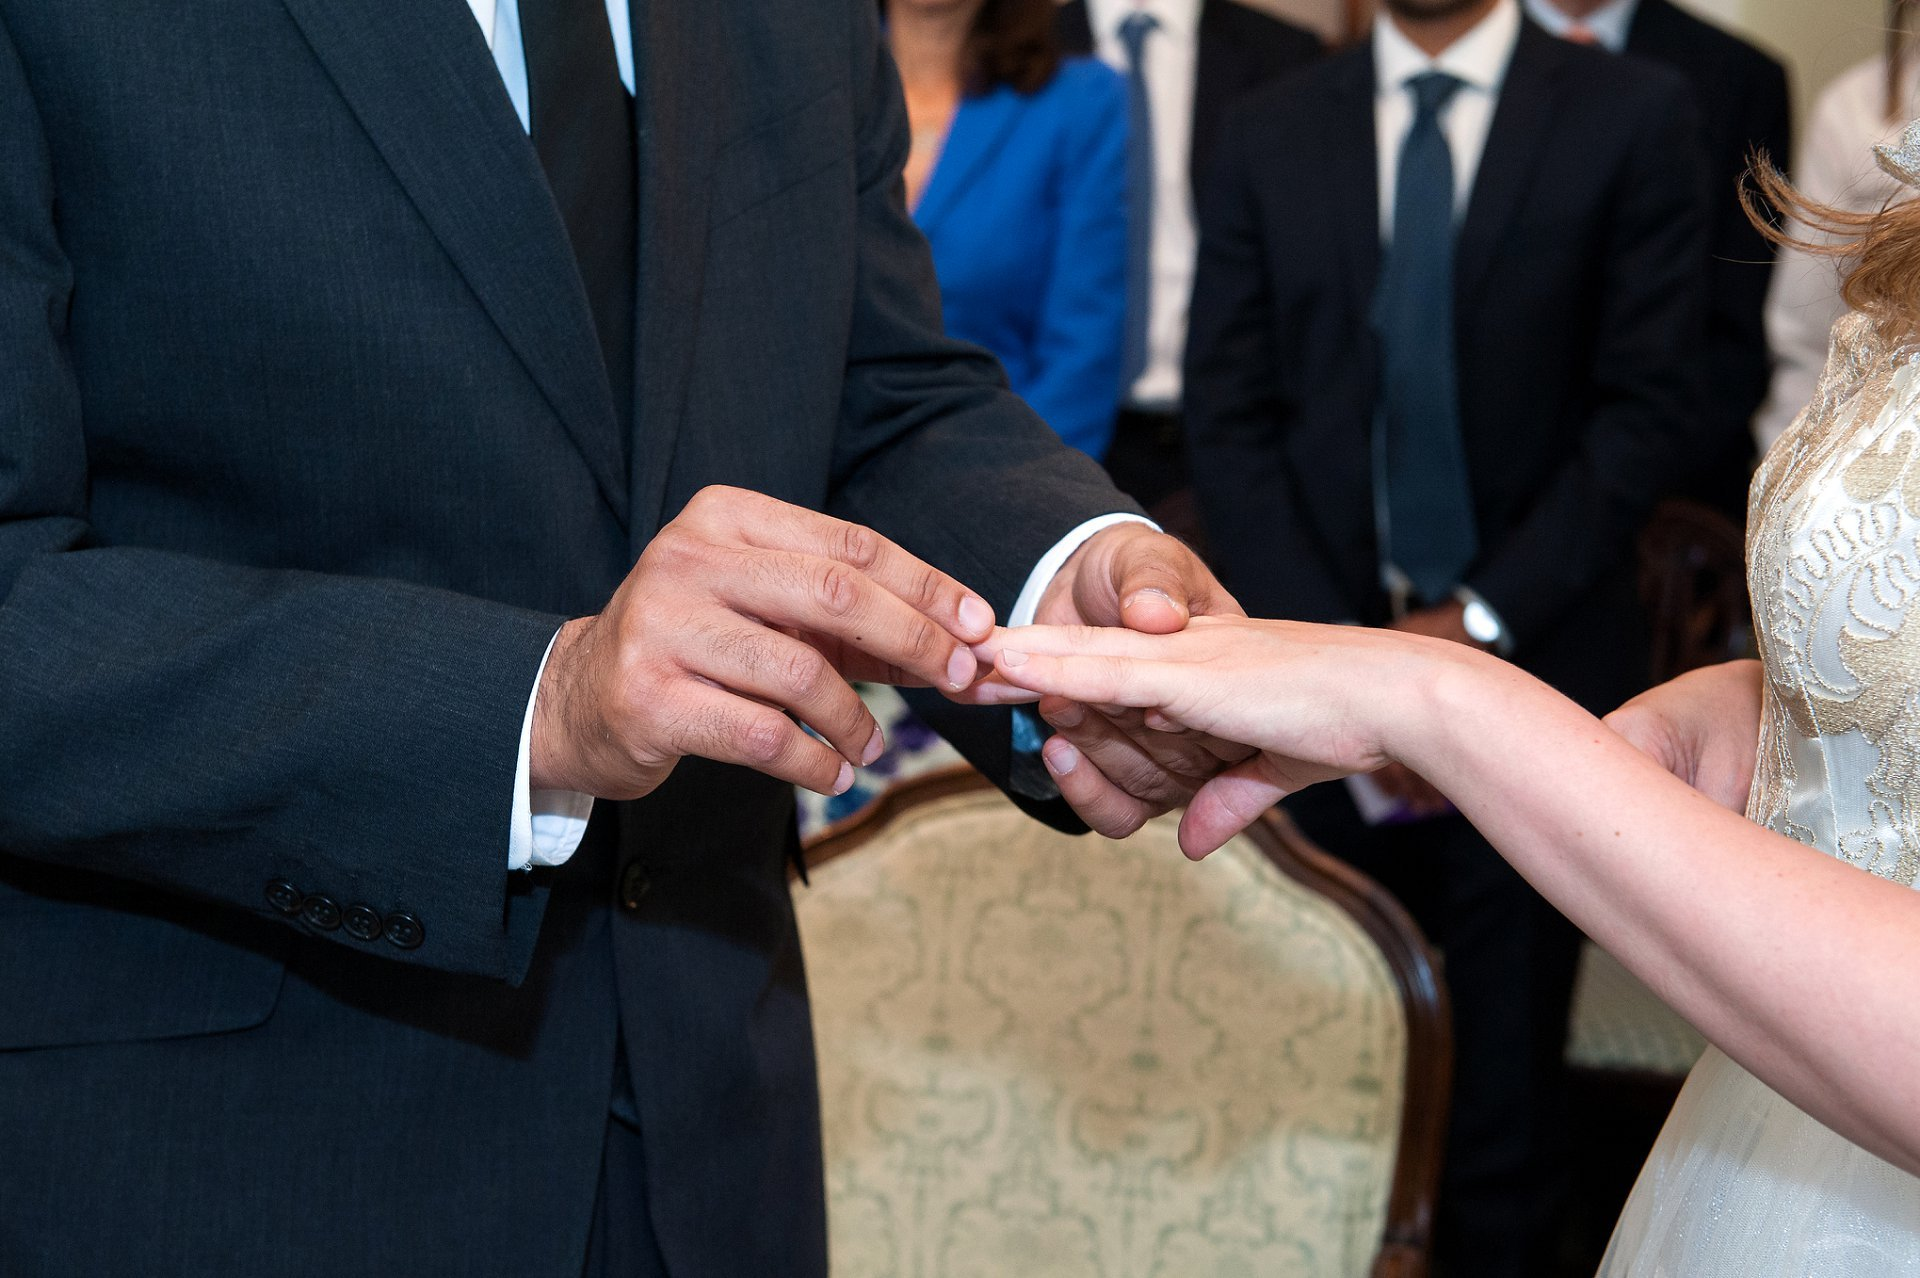 The groom places the wedding band on his bride's finger during this Chelsea wedding